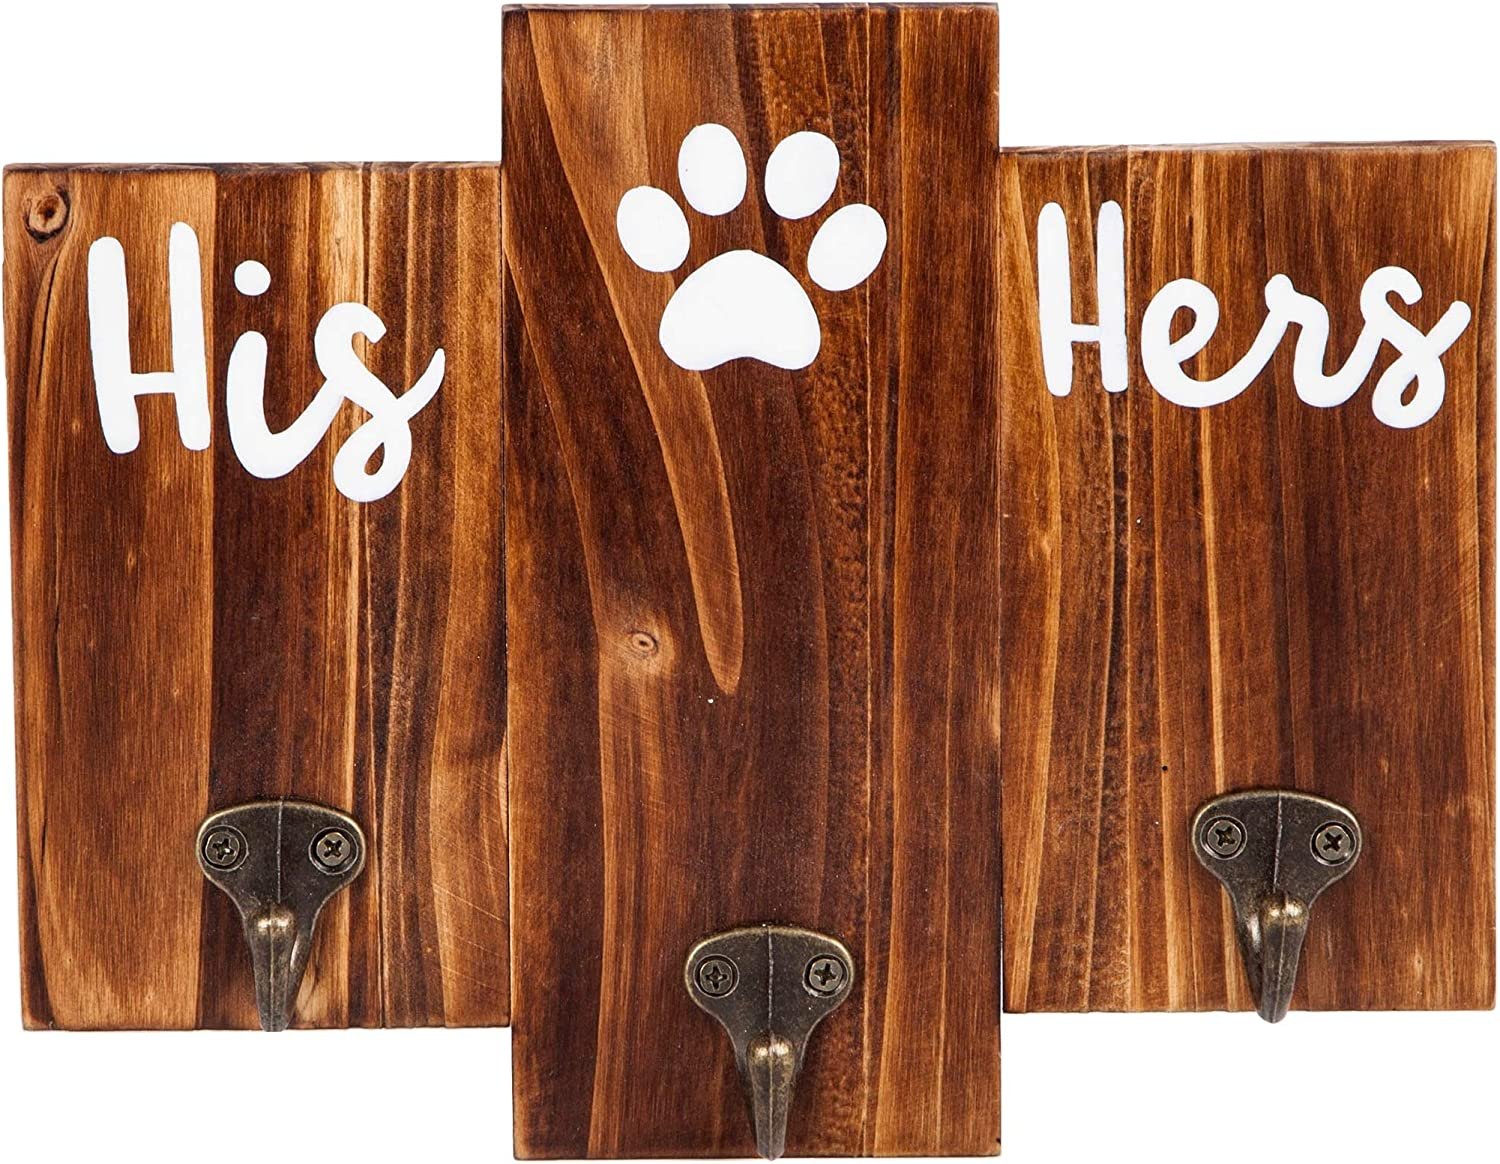 TBFM His Her Dog Hanger – Unique Key Holder and Dog Leash Hanger with 3 Hooks for Wall | Rustic Décor for Entryway | Cute Housewarming Gifts for Dog Owner & Lovers | 9.8 Inch Wide 7.9 Inch Tall